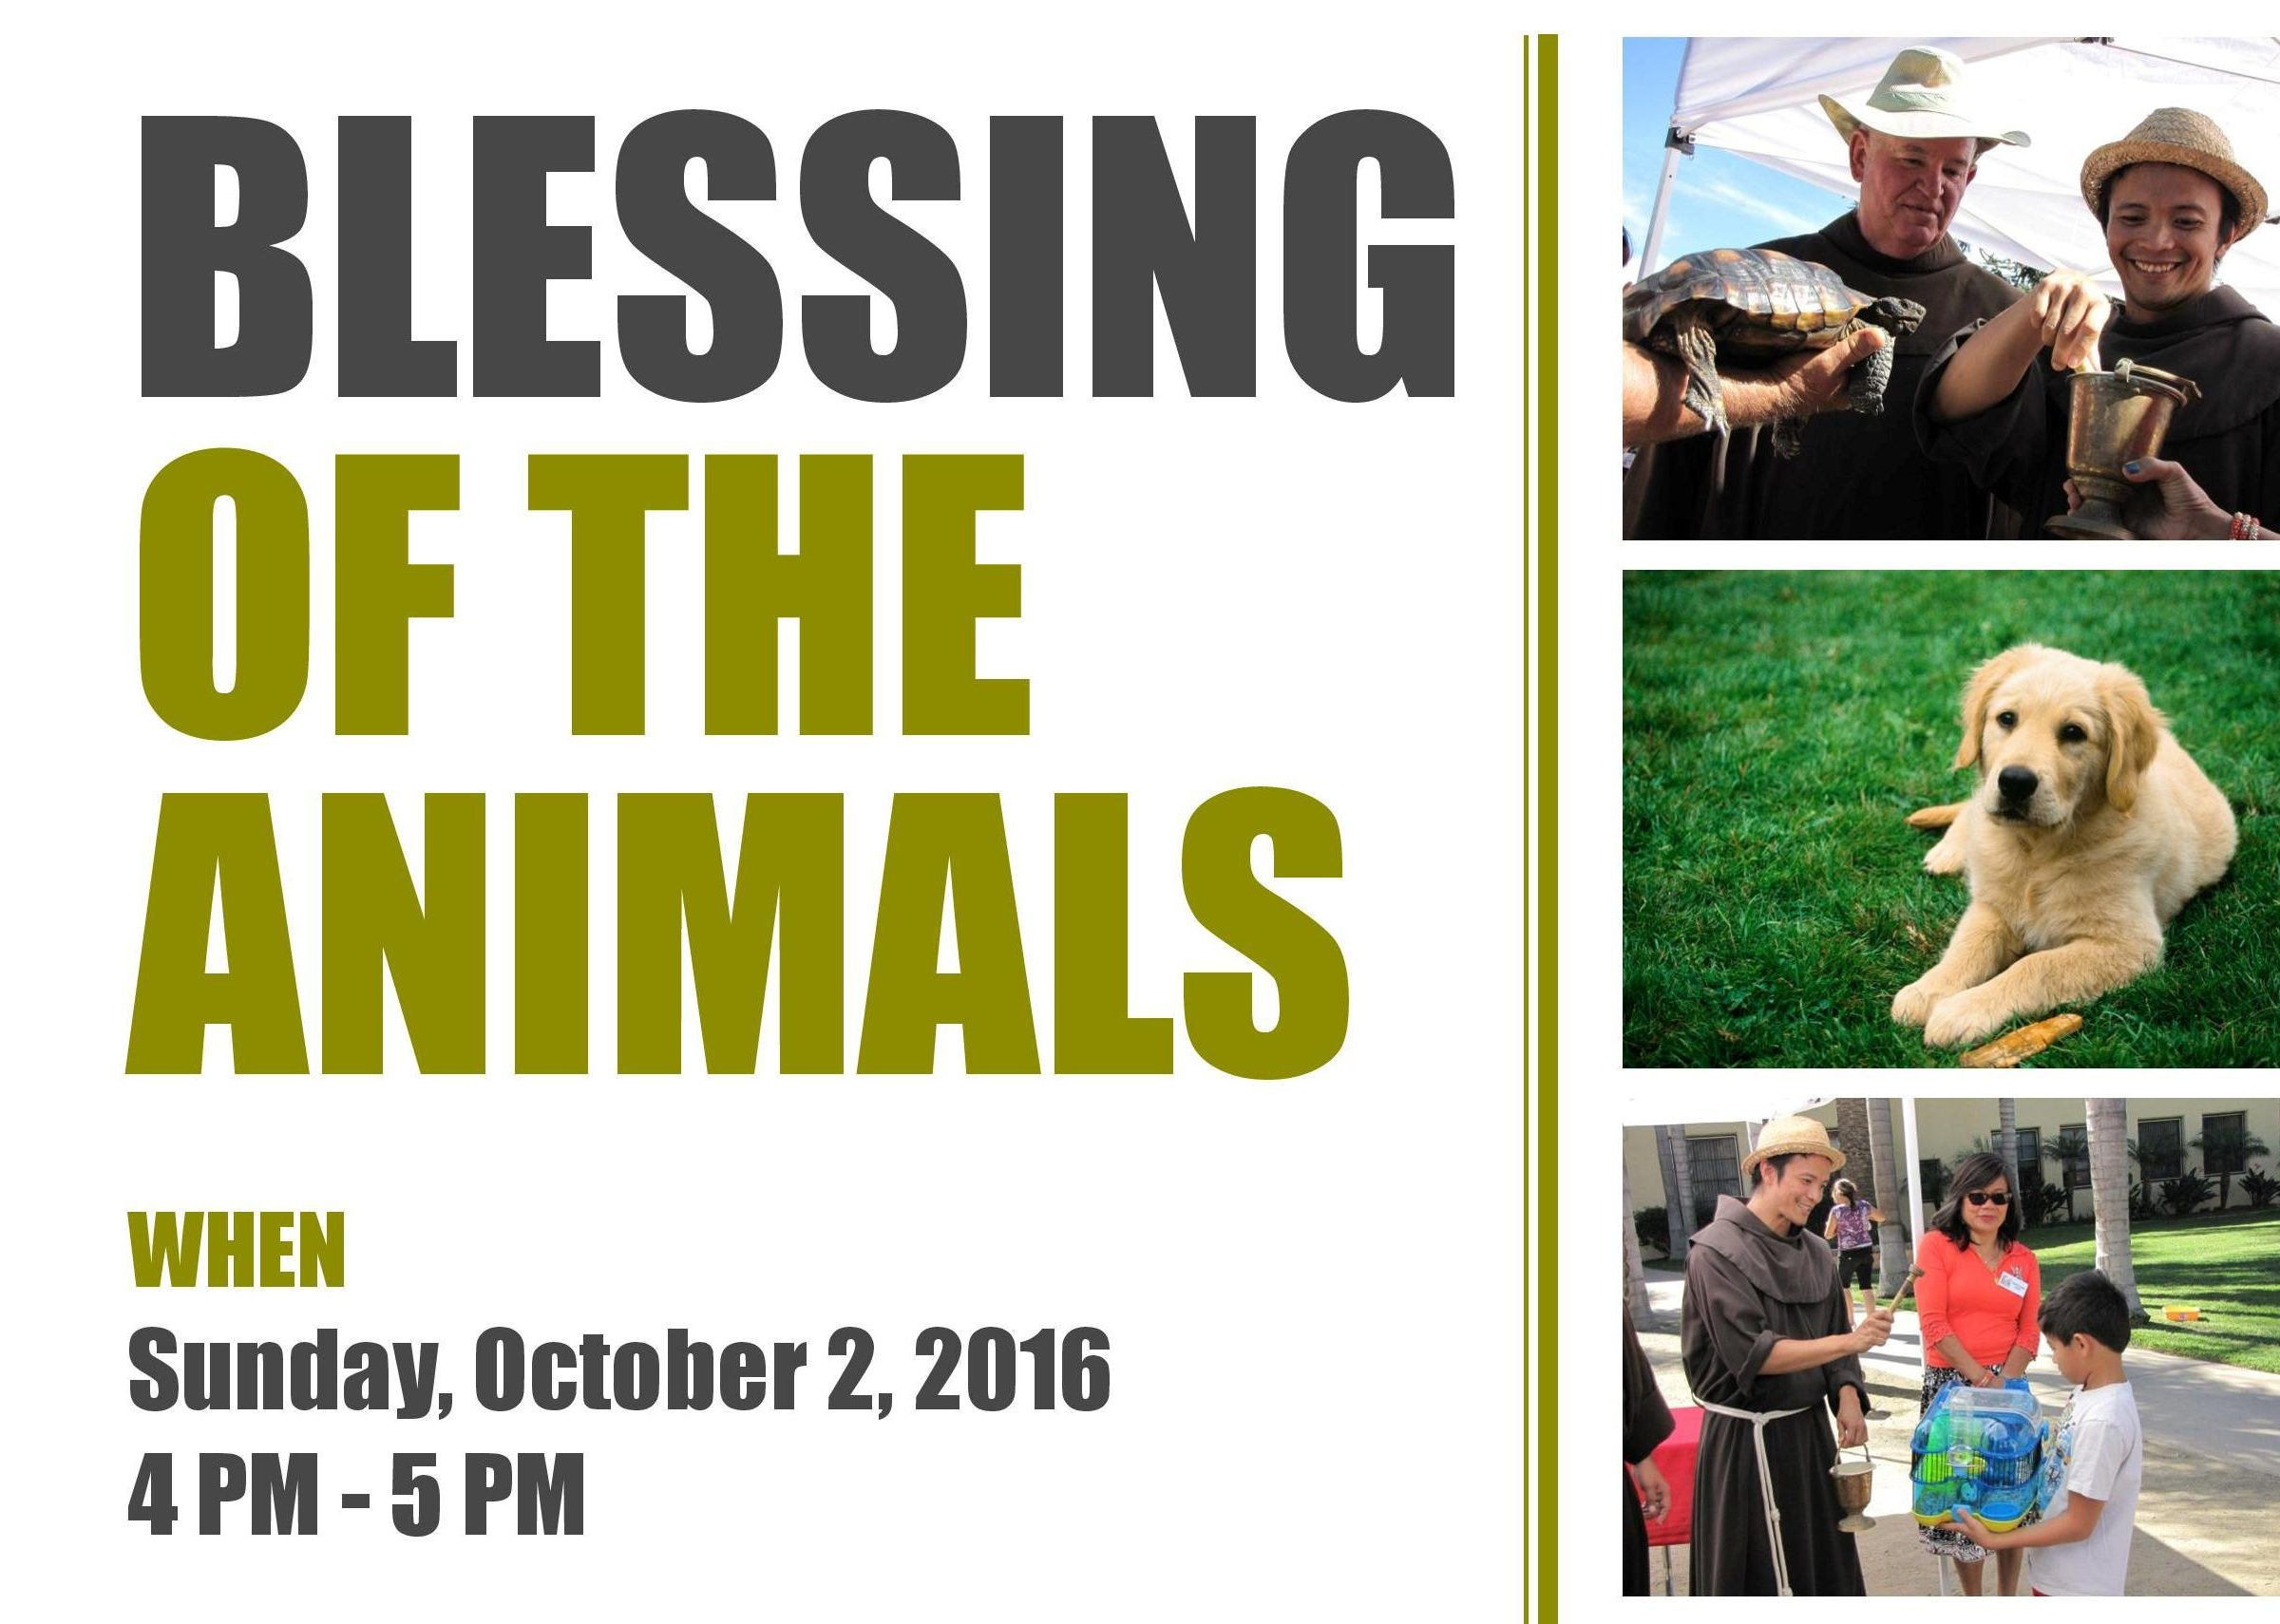 blessing-of-the-animals-graphic